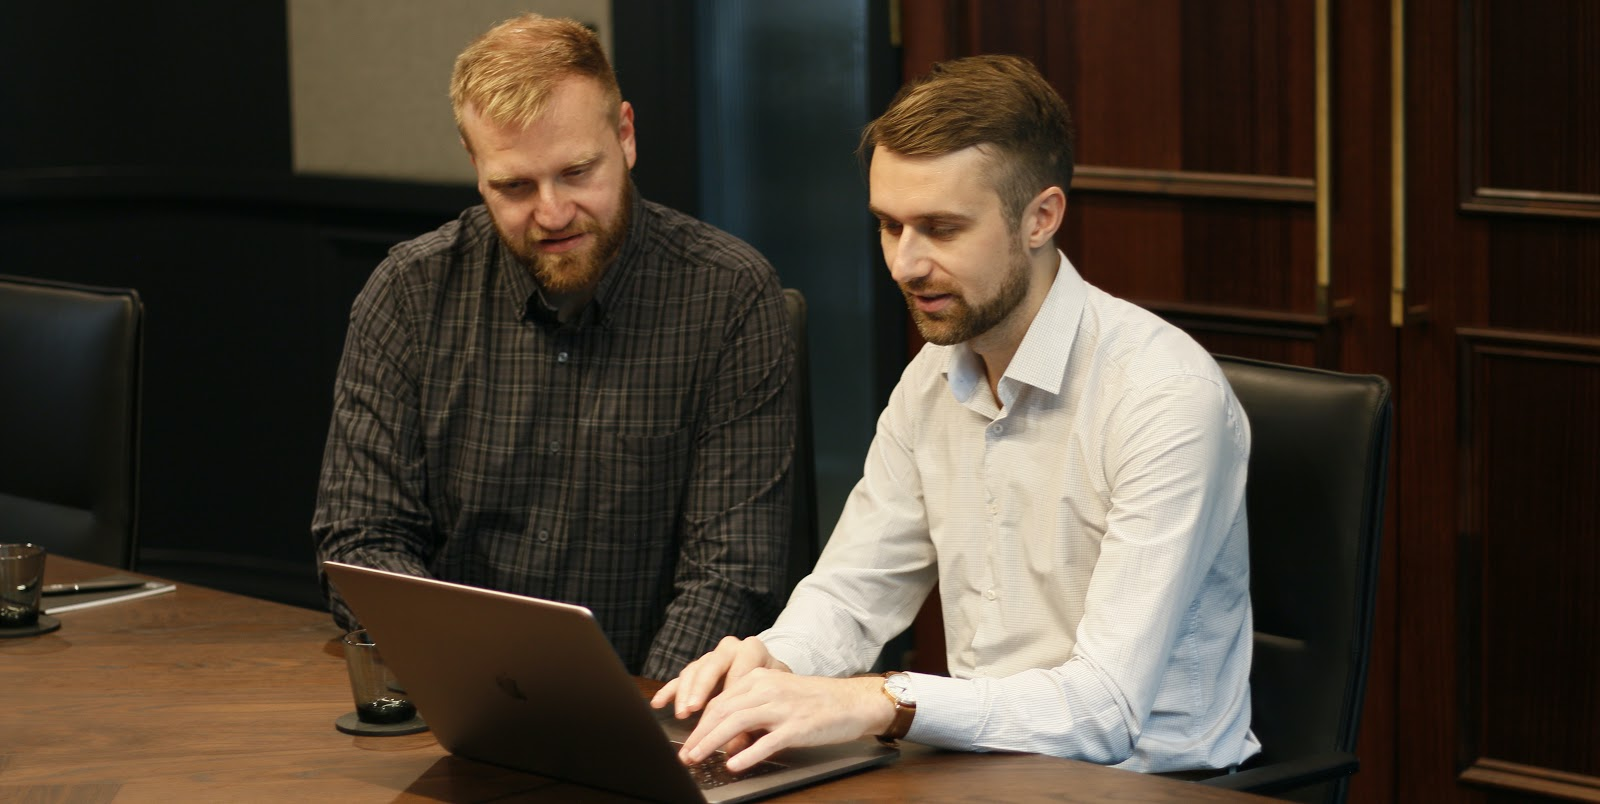 Two people investigating FTP clients on laptop.